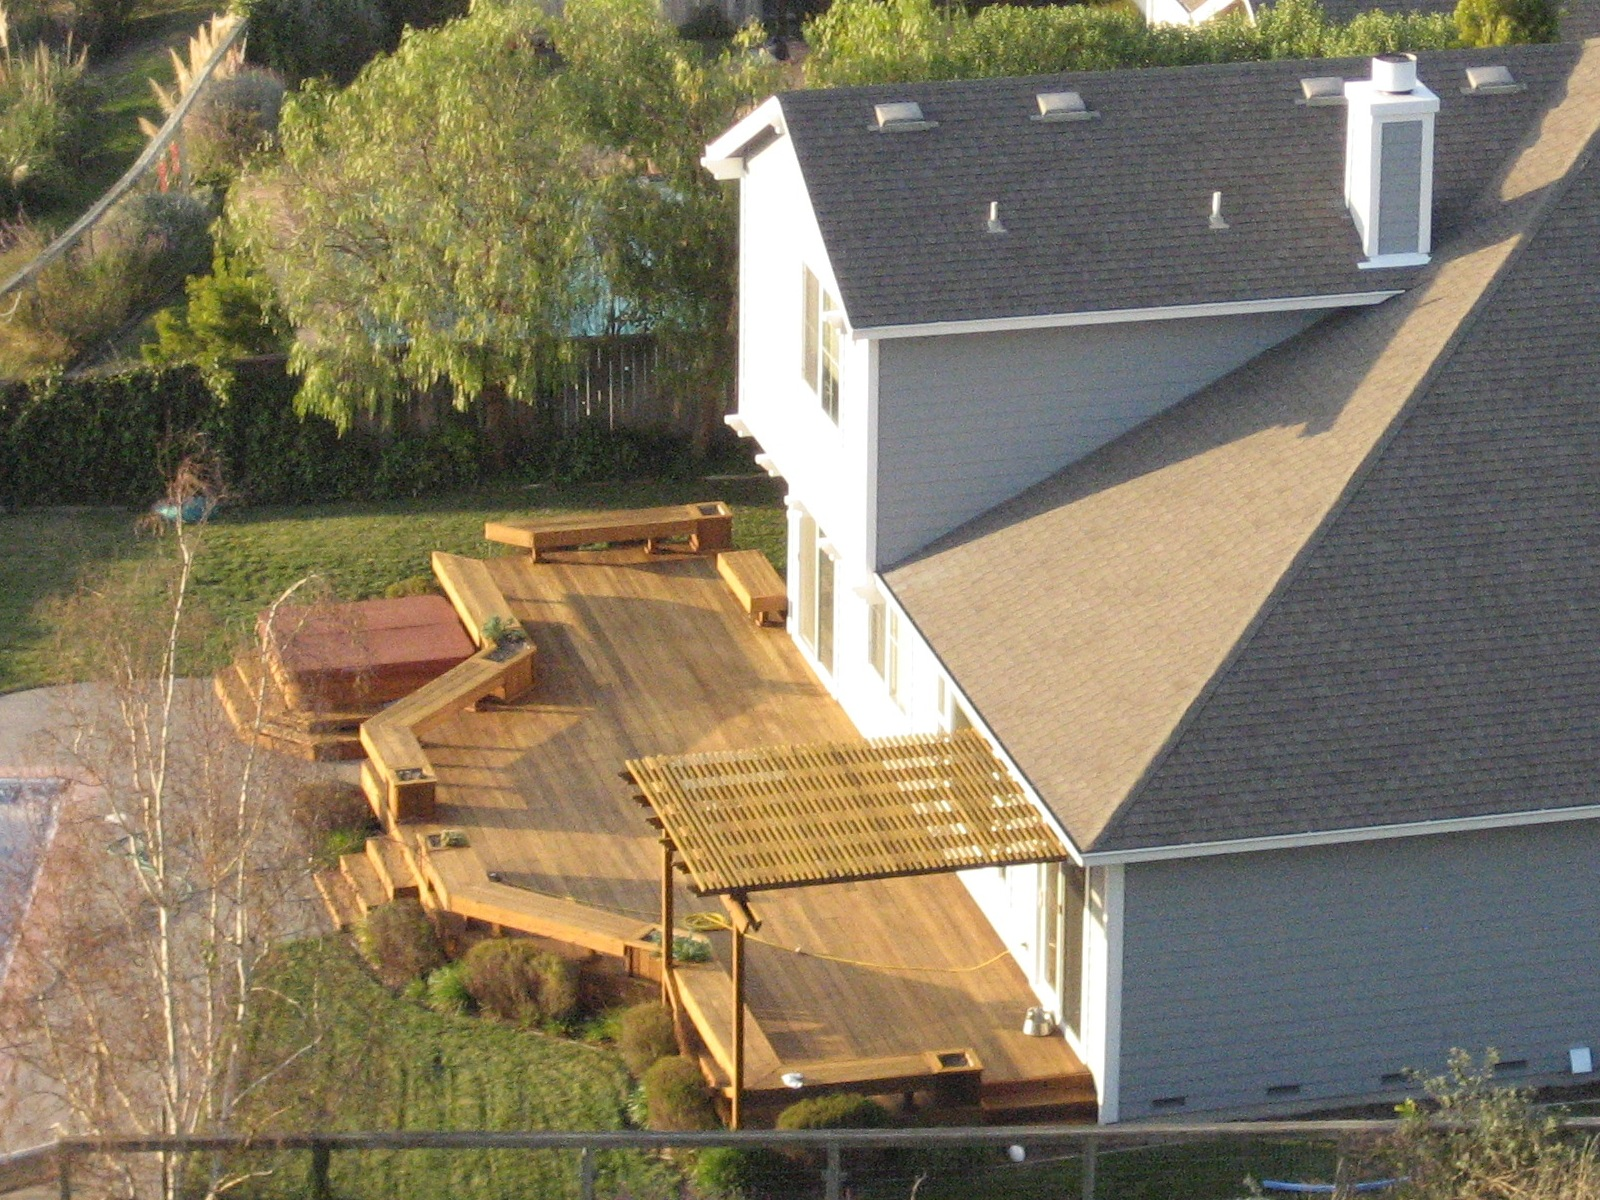 How to build a deck step by step thrifty outdoors for Basic deck building instructions